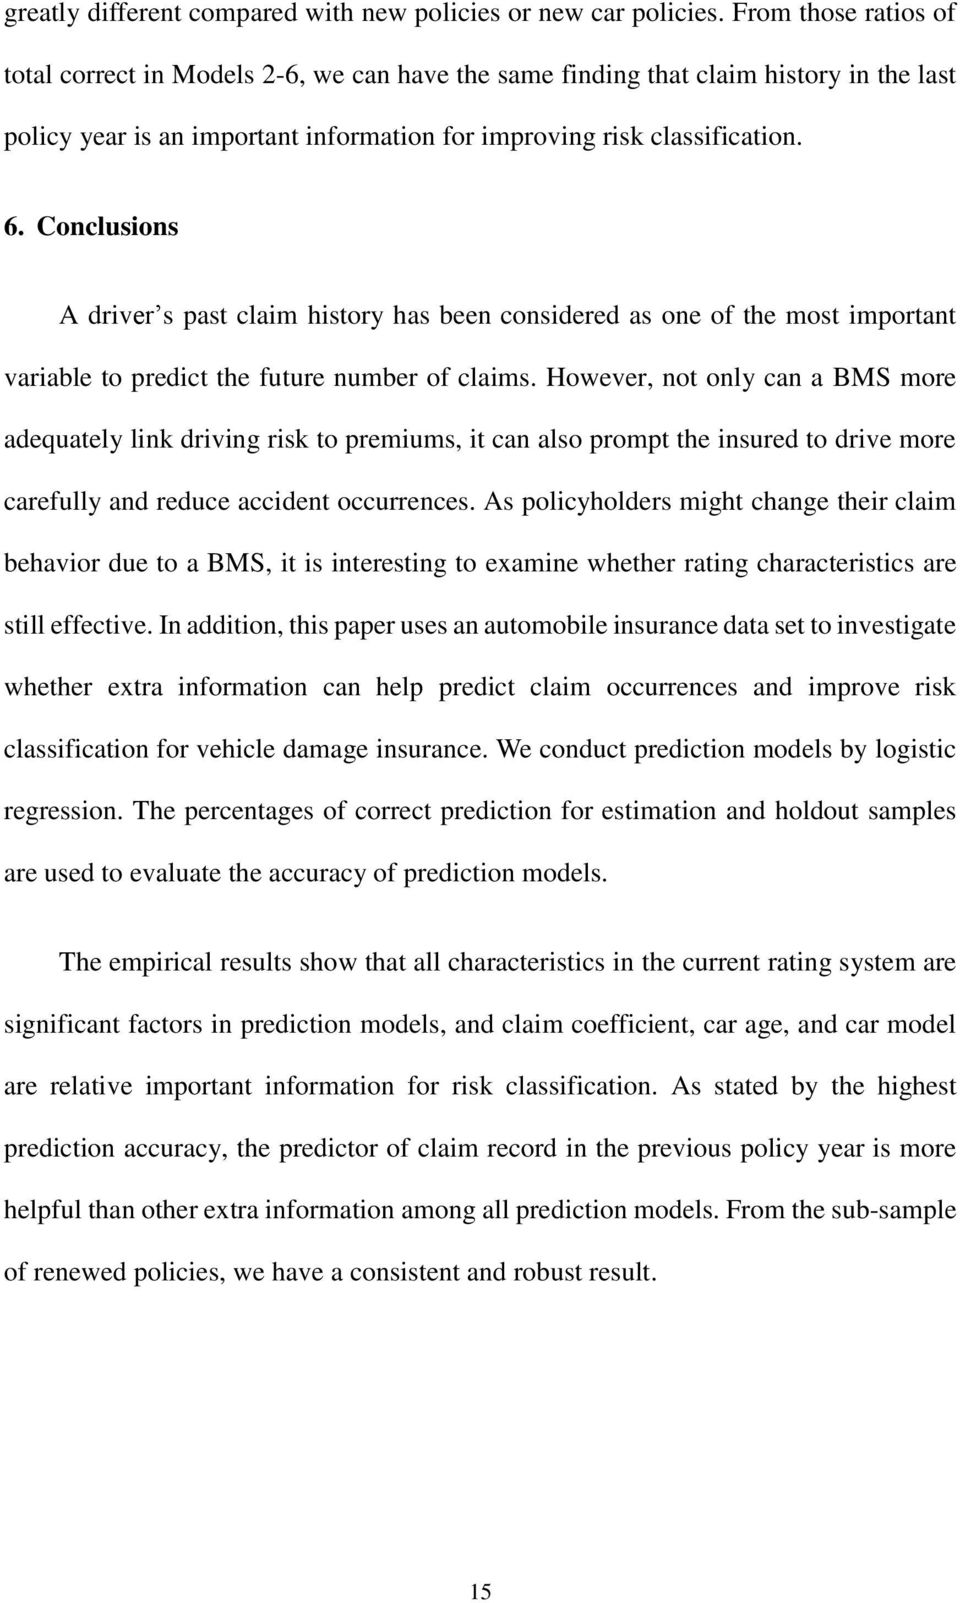 Conclusions A driver s past claim history has been considered as one of the most important variable to predict the future number of claims.